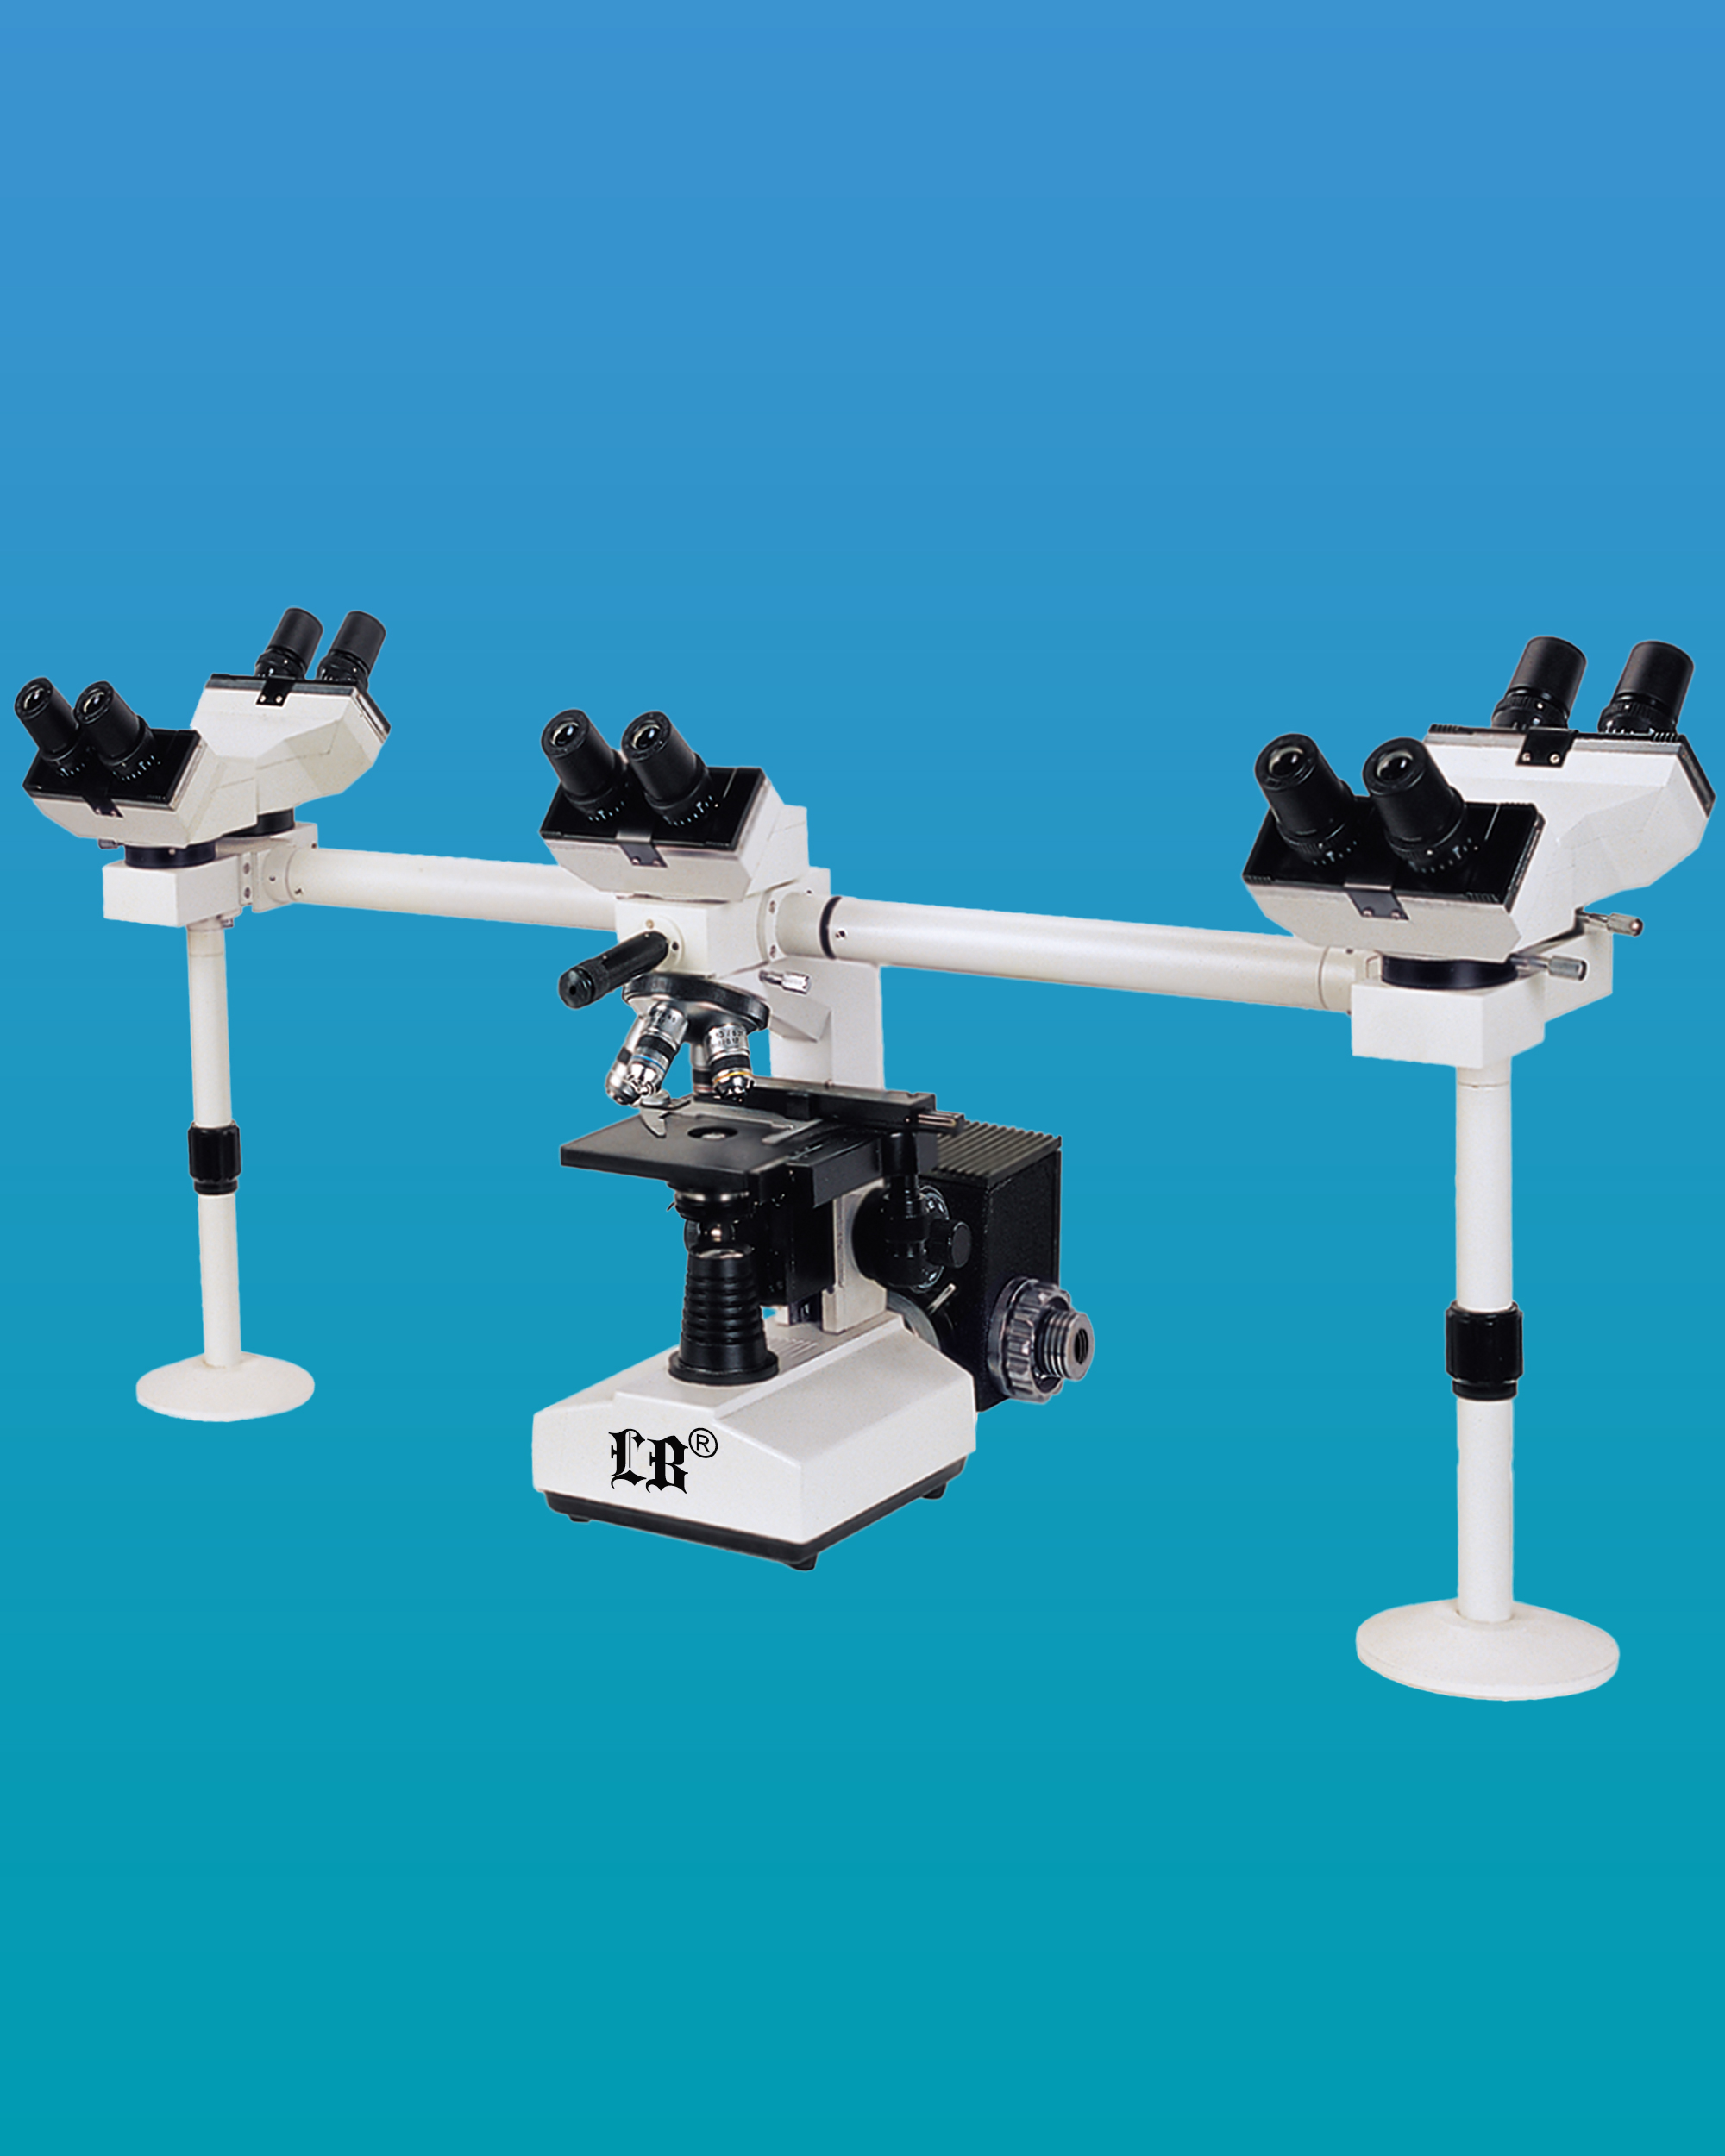 [LB-933] Multi-Head Microscope for 5 Users